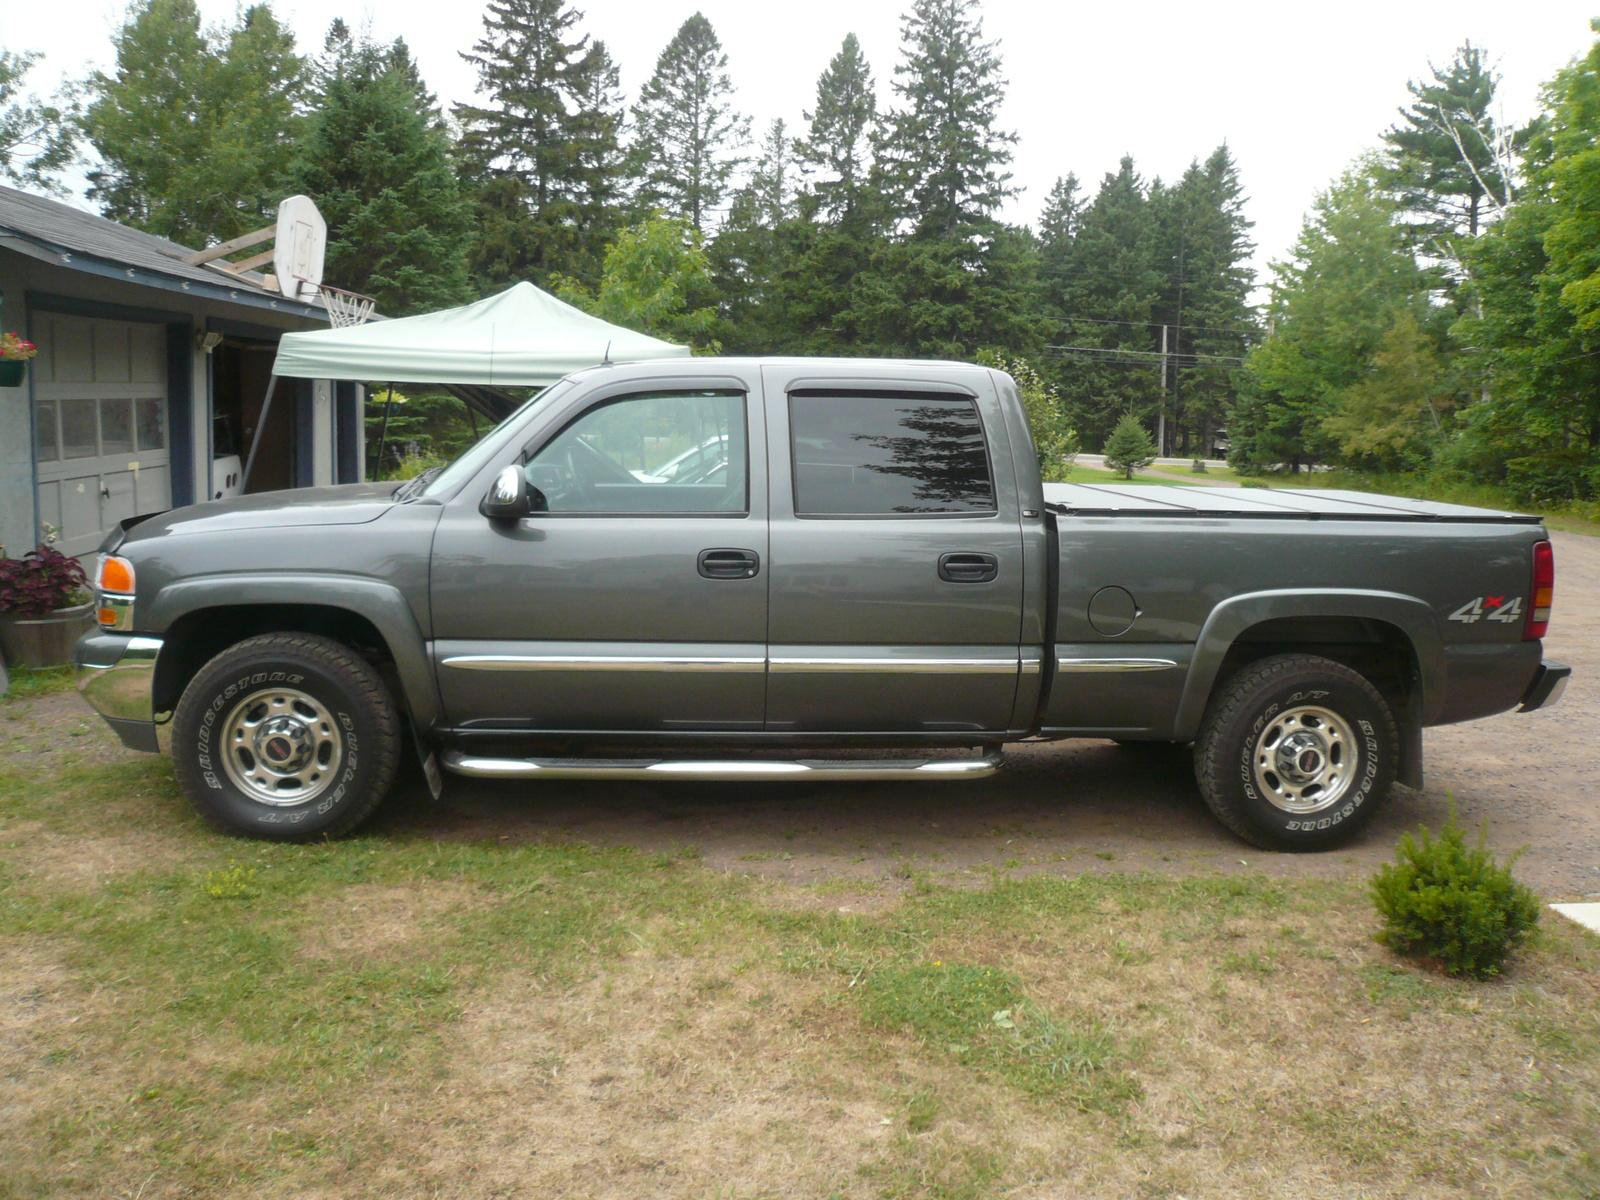 2001 Gmc Sierra 1500hd Information And Photos Neo Drive